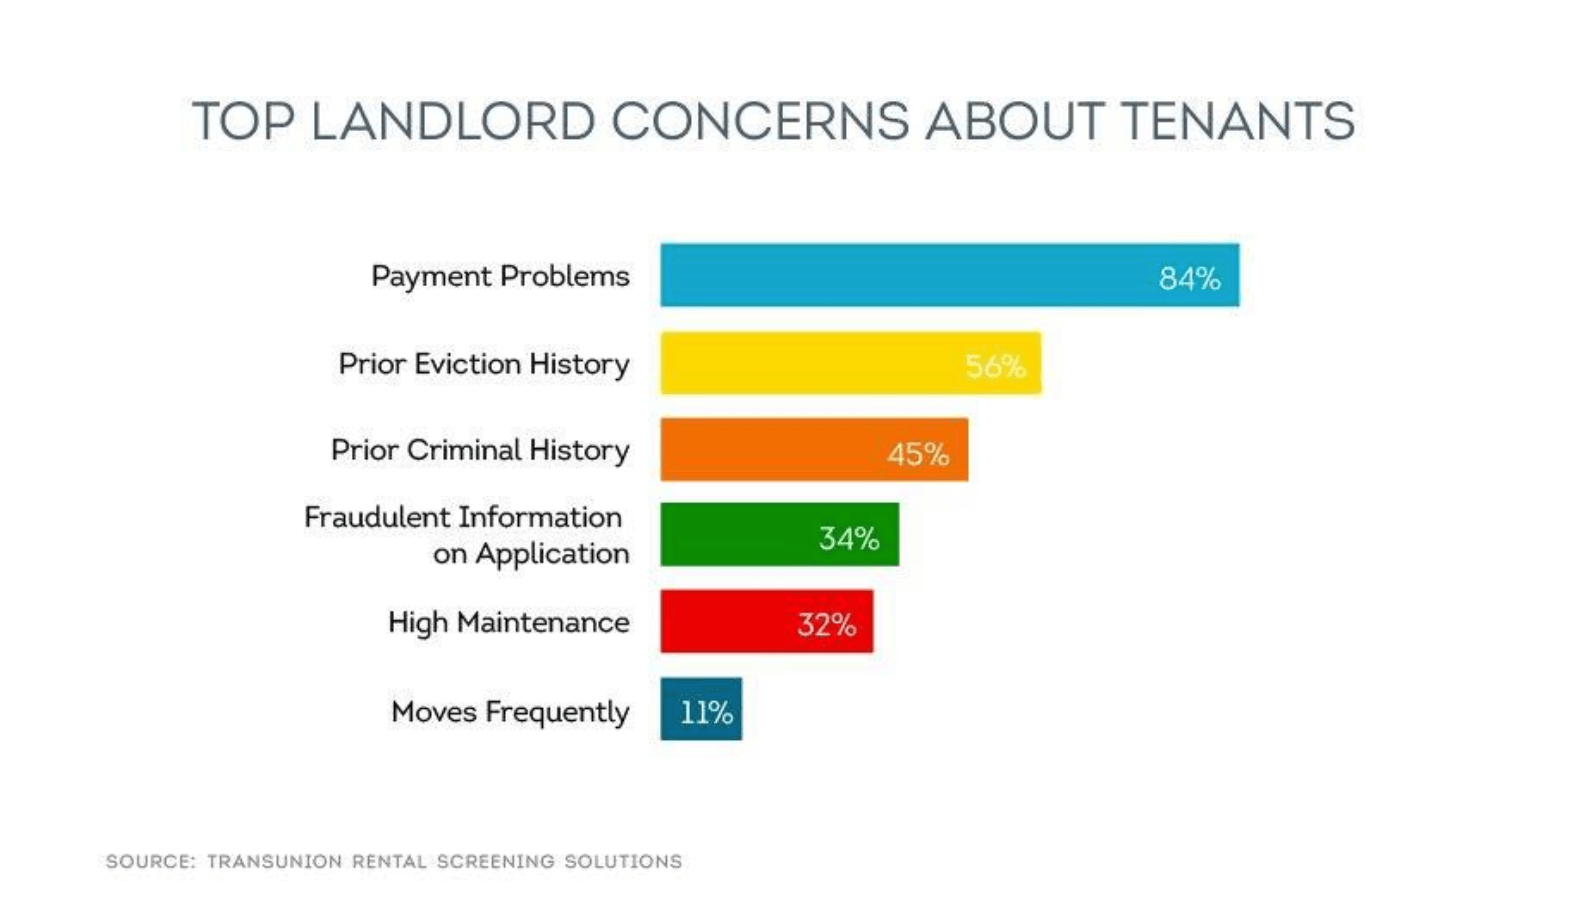 Top landlord concerns about tenants infographic